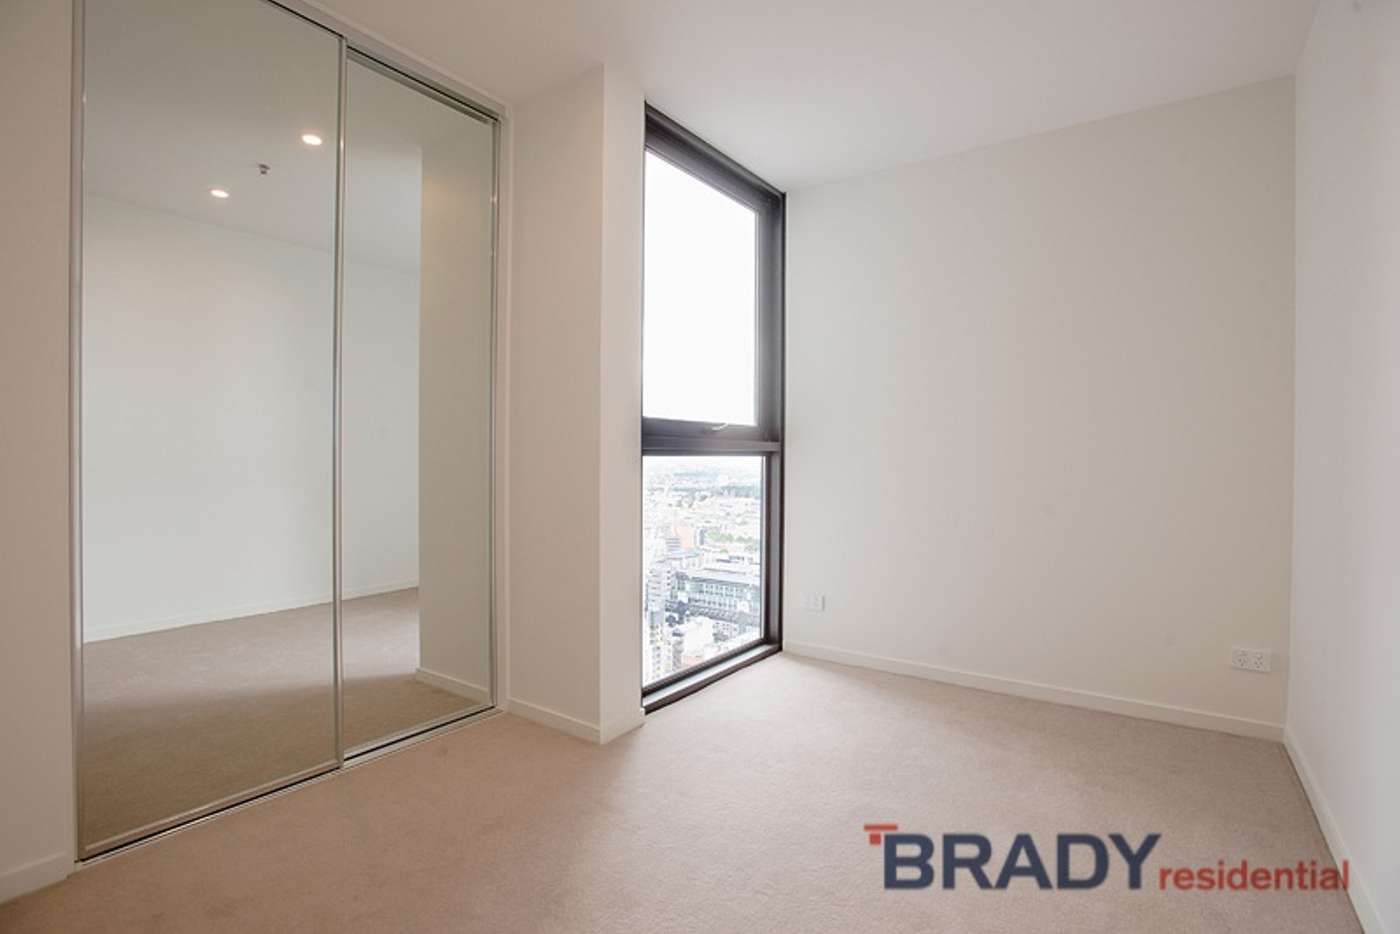 Seventh view of Homely apartment listing, 3801/8 Sutherland Street, Melbourne VIC 3000